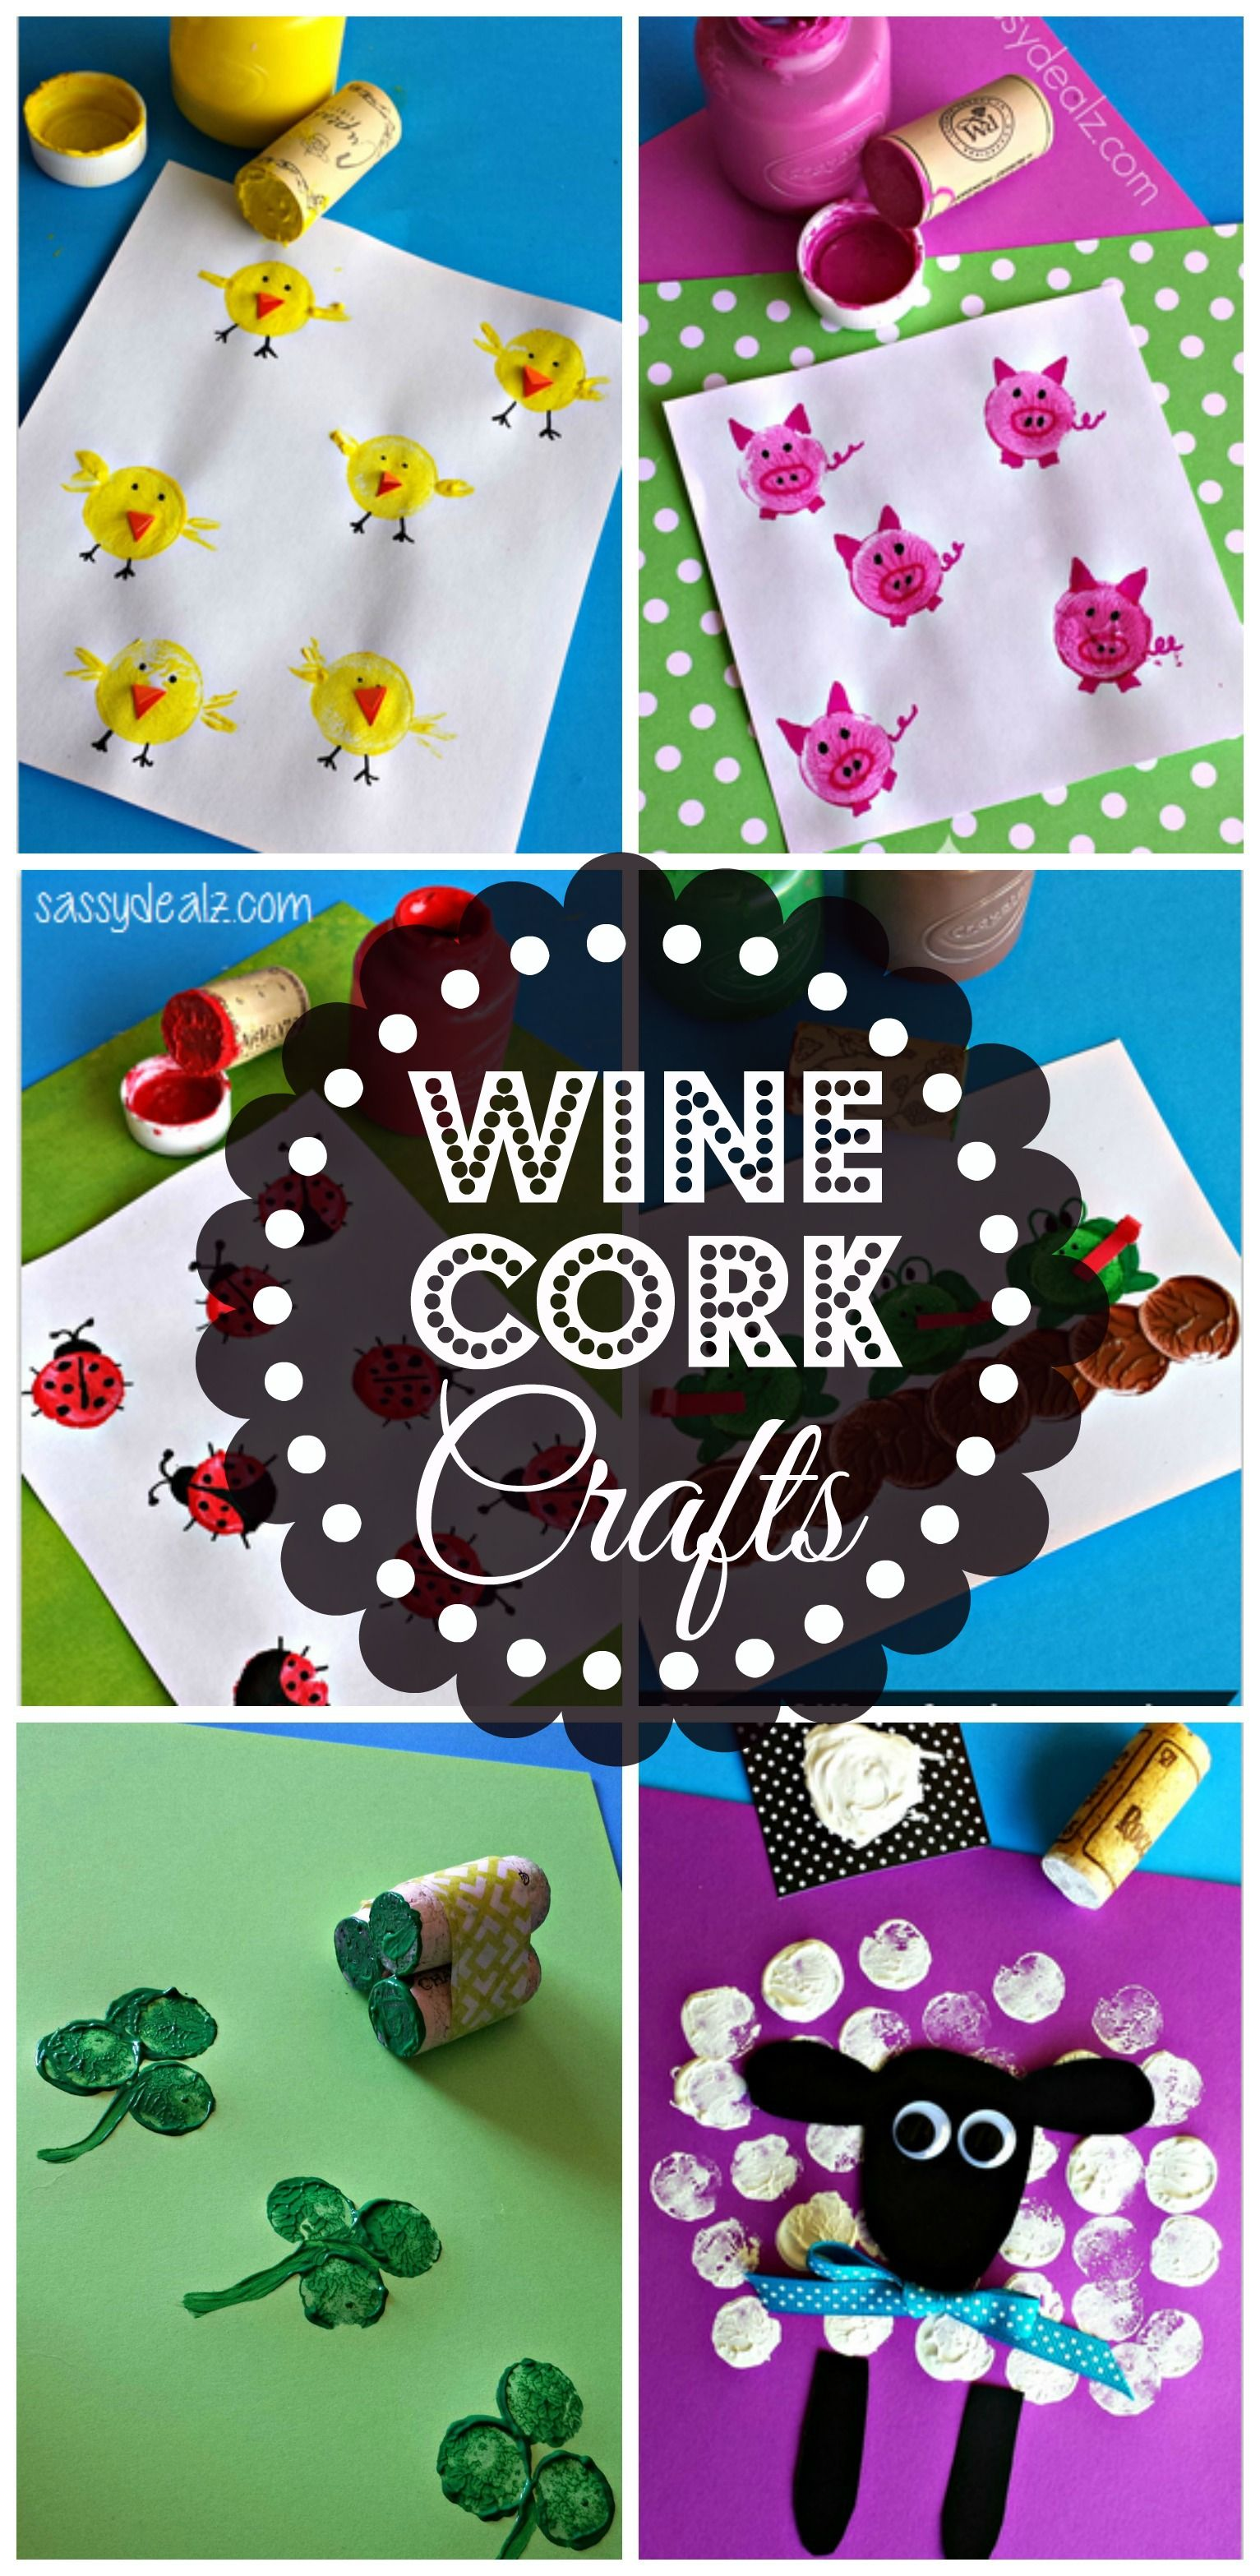 Wine Cork Crafts & Art Project for Kids #DIY #Kids crafts | http://www.sassydealz.com/2014/04/wine-cork-crafts-art-project-kids.html